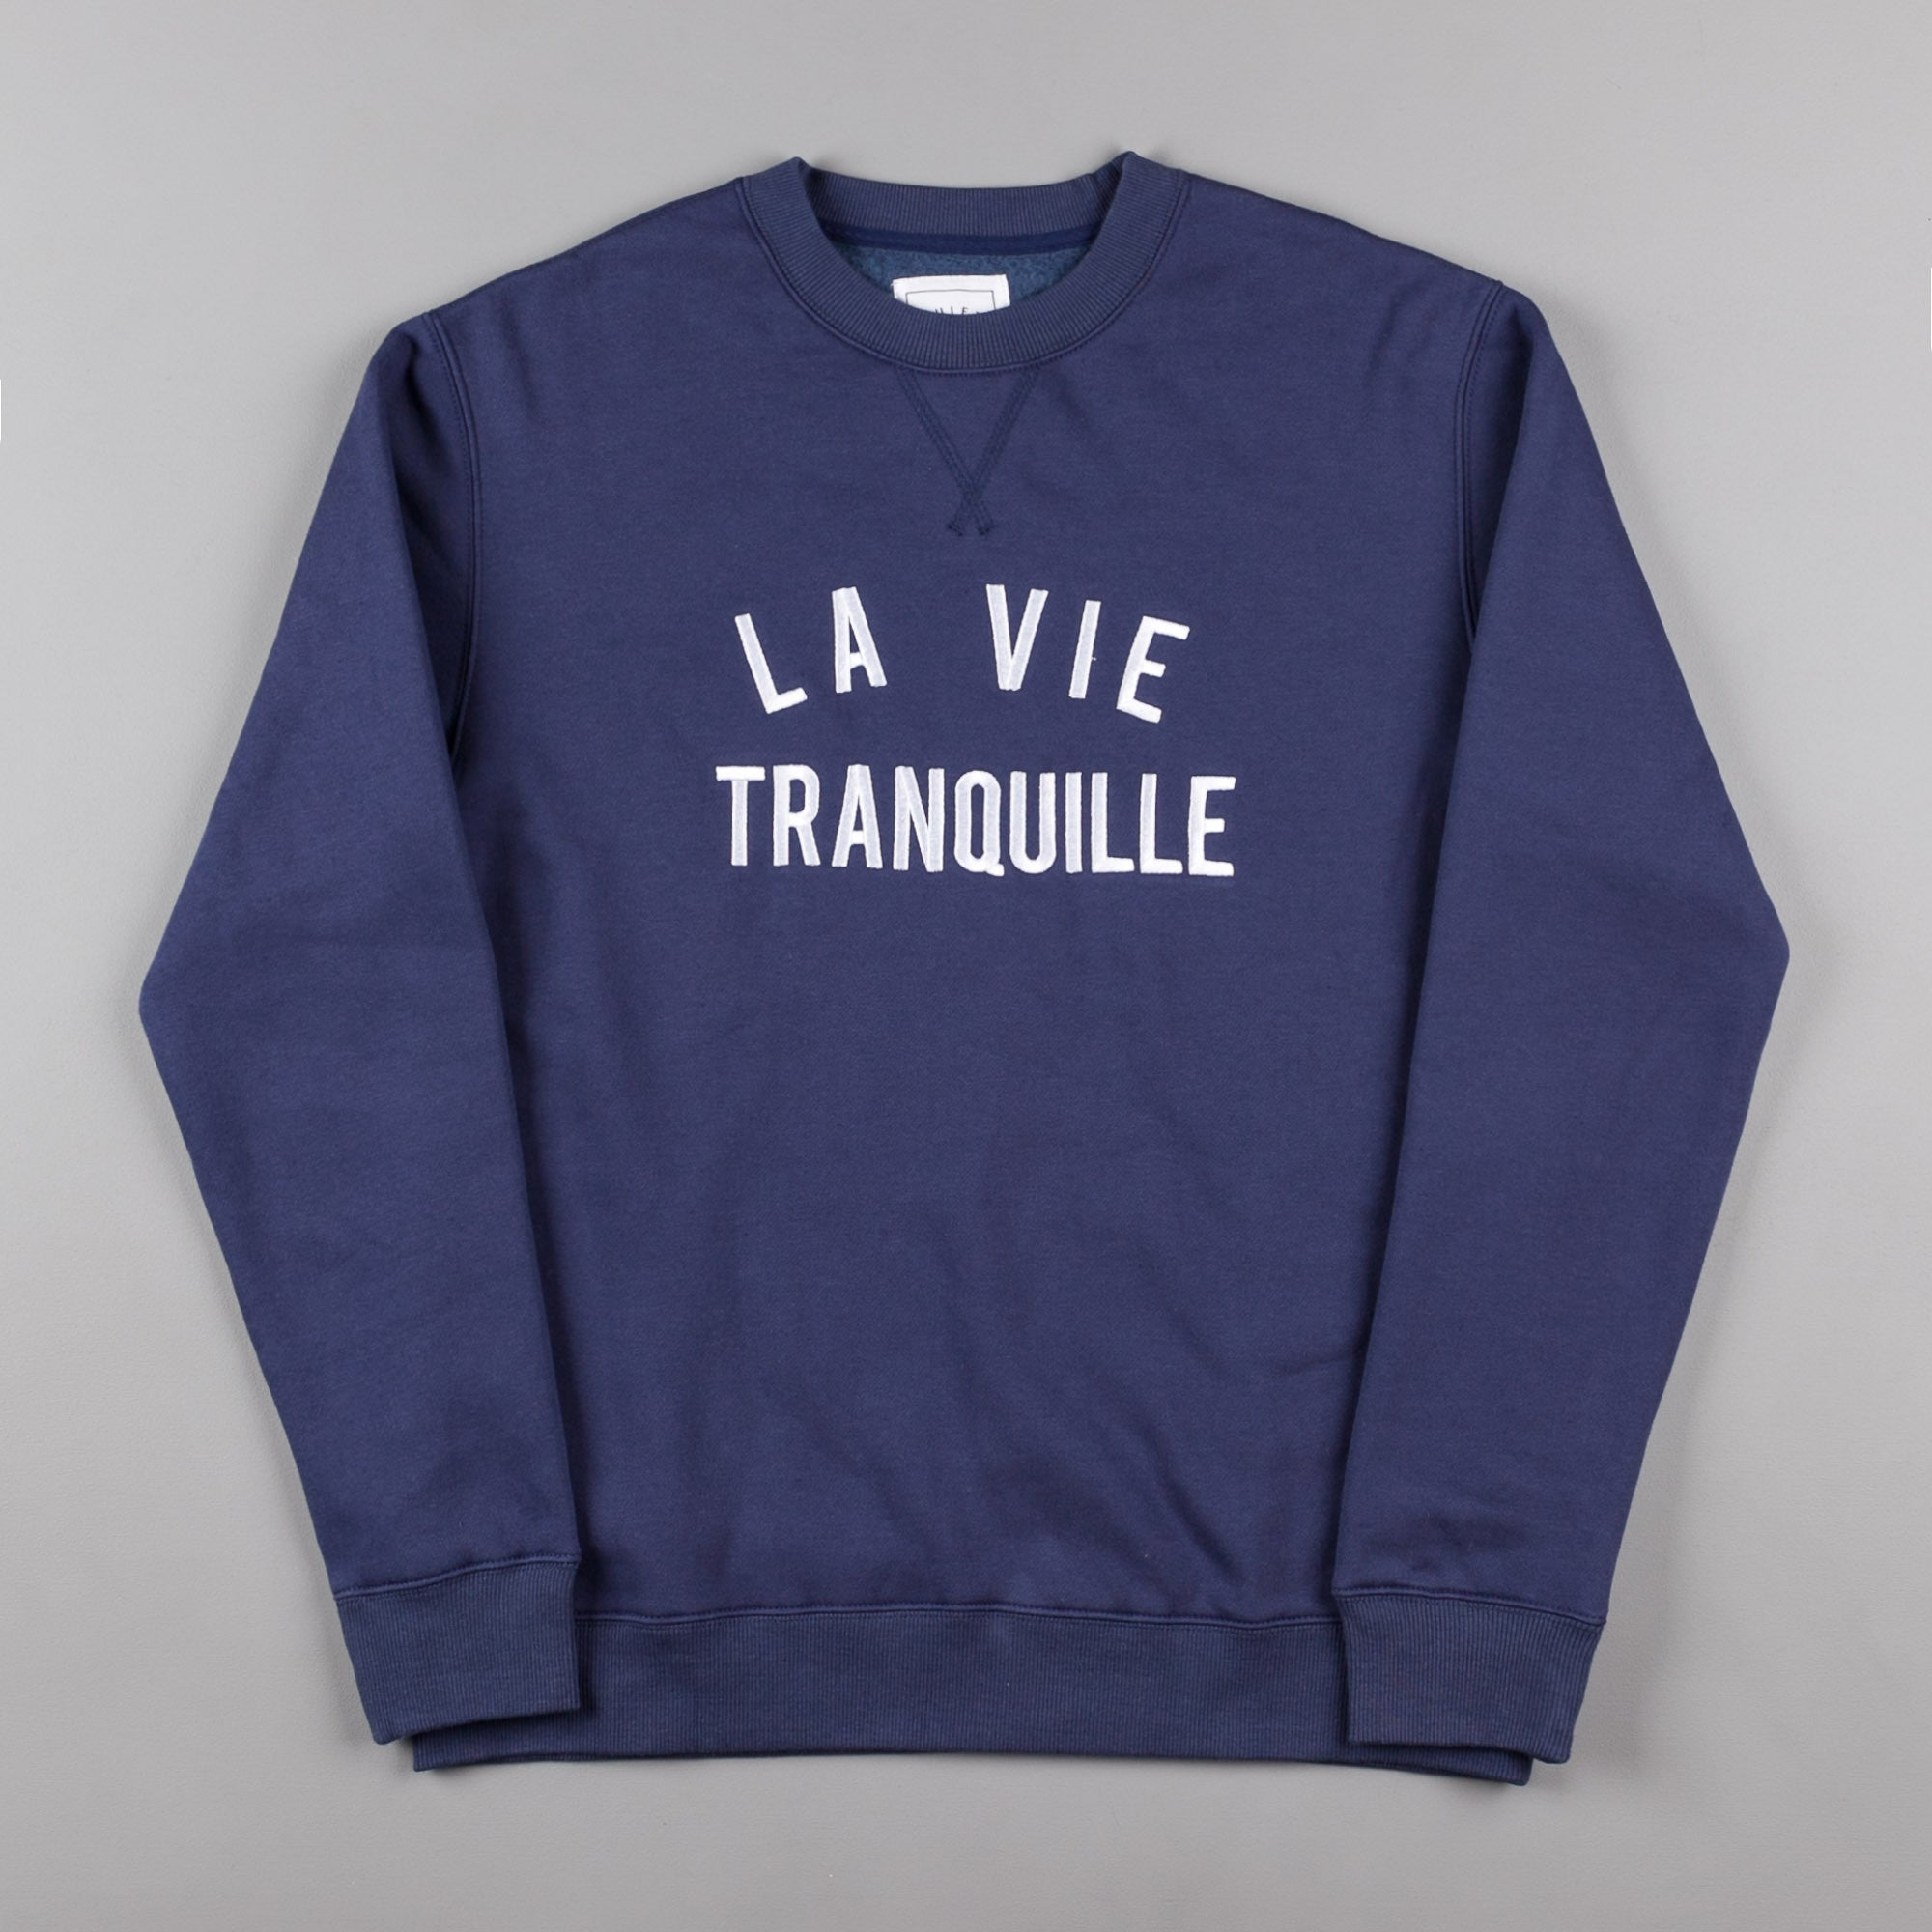 The Quiet Life La Vie Tranquille Crewneck Sweatshirt - Navy